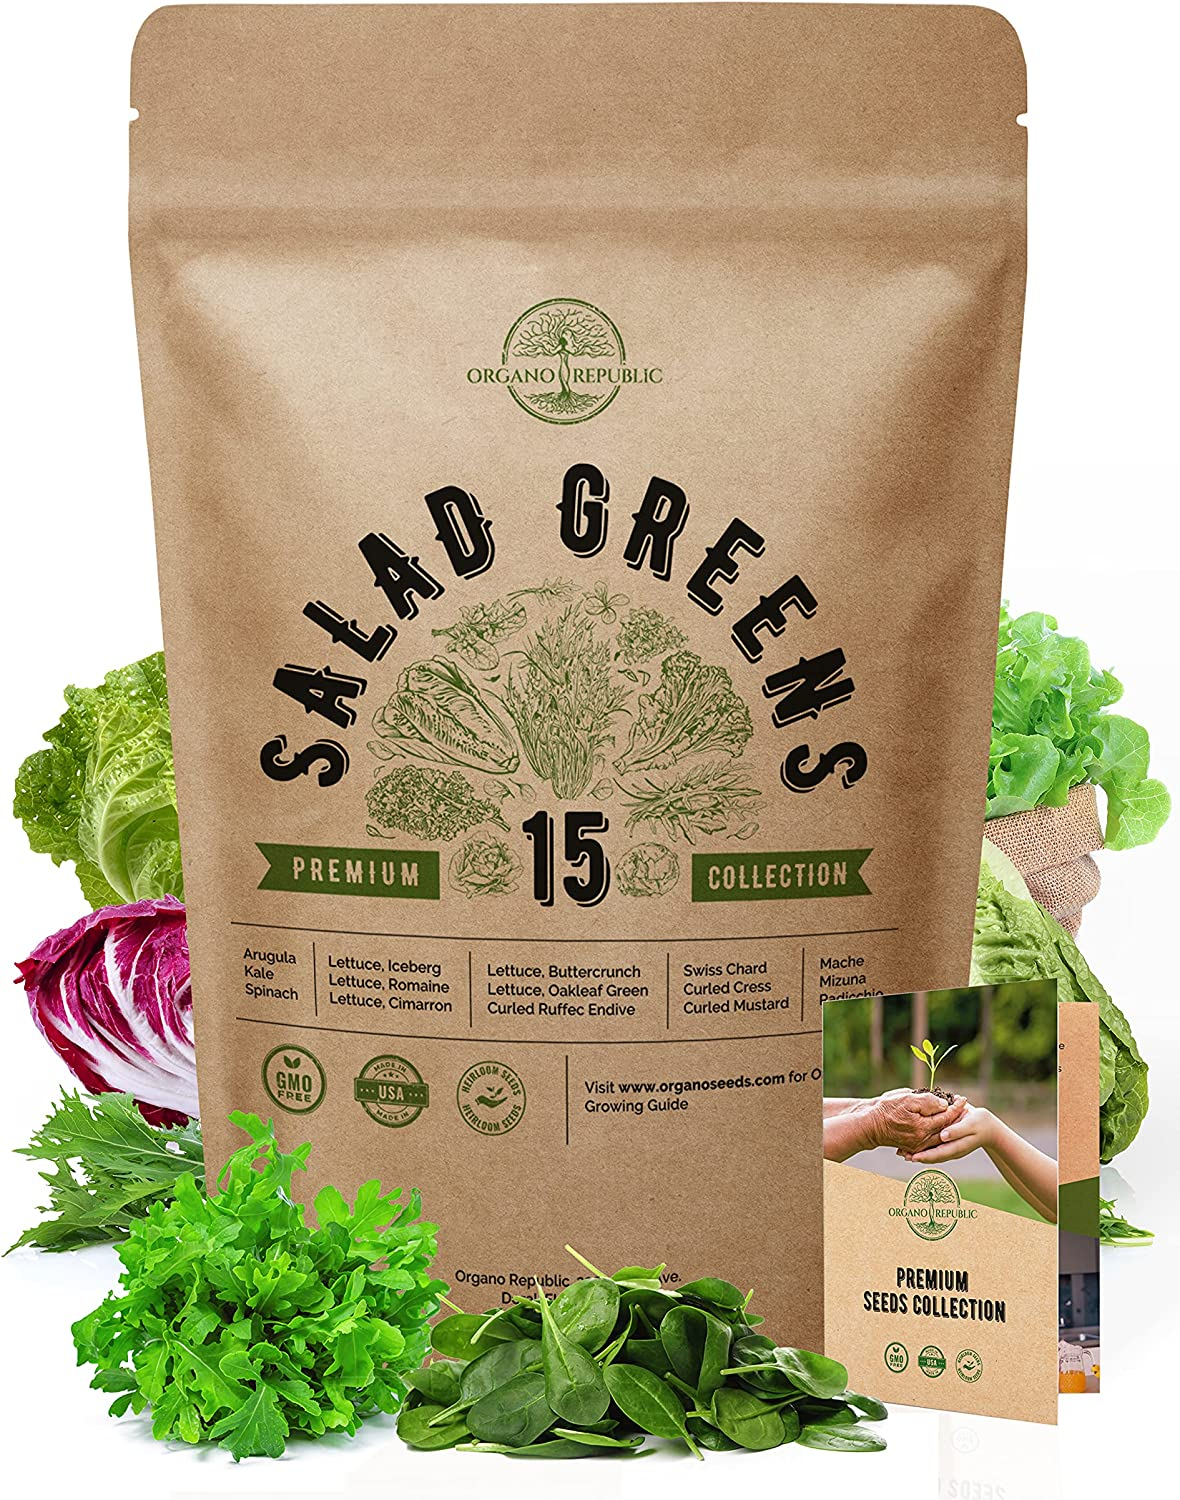 15 Lettuce & Salad Greens Seeds Variety Pack 7500+ Non-GMO Heirloom Lettuce Seeds for Planting Indoors & Outdoors Garden, Hydroponics, Aerogarden - Arugula, Kale, Spinach, Swiss Chard, Lettuce & More